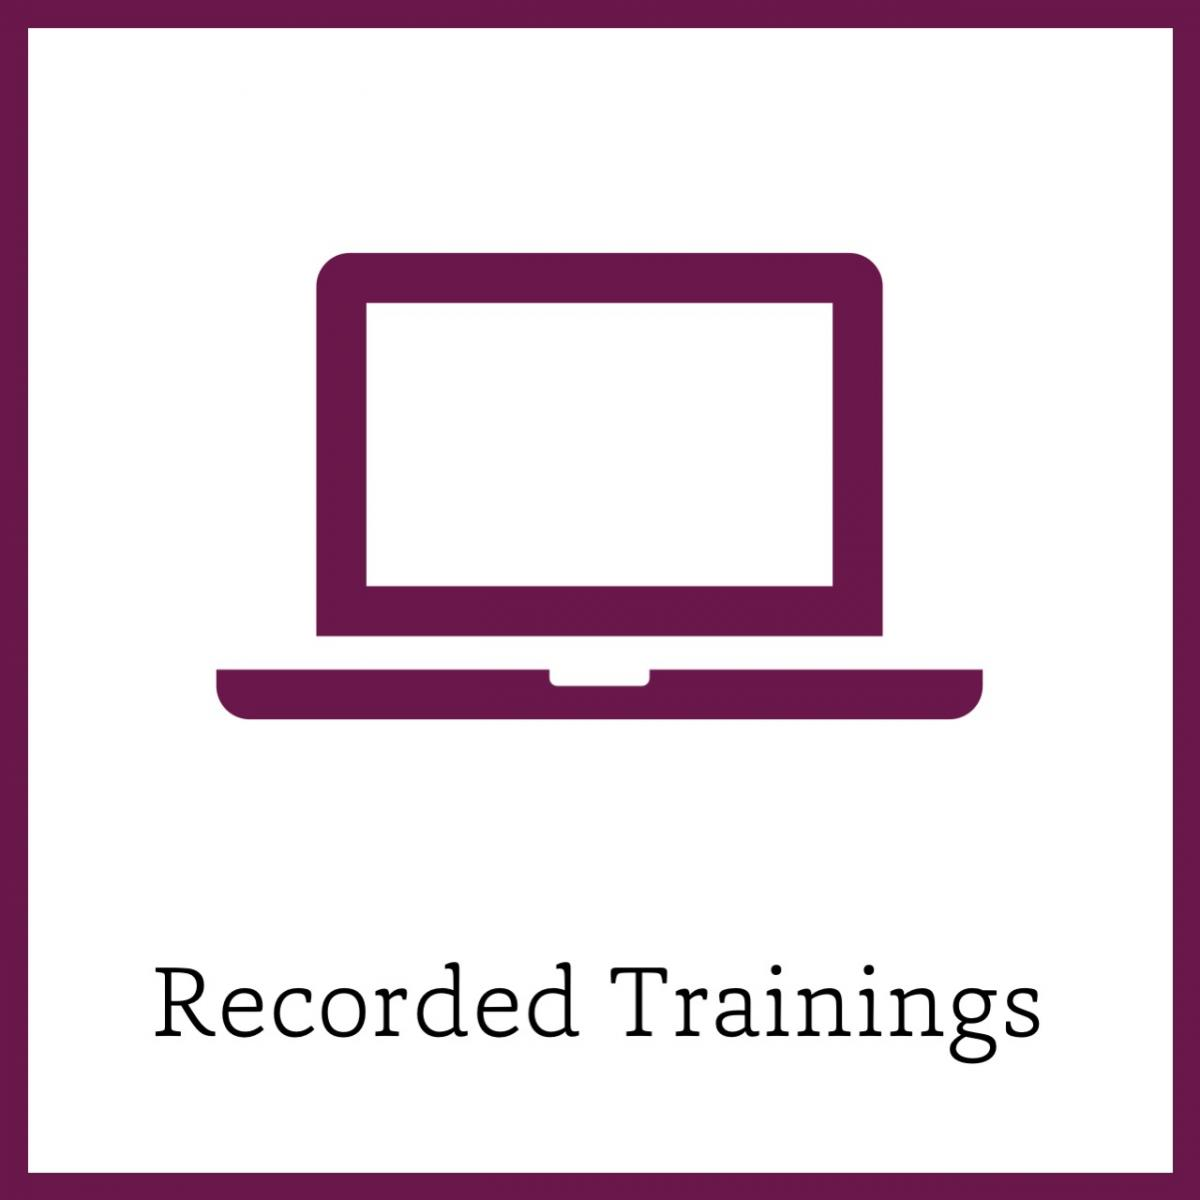 Recording trainings link icon